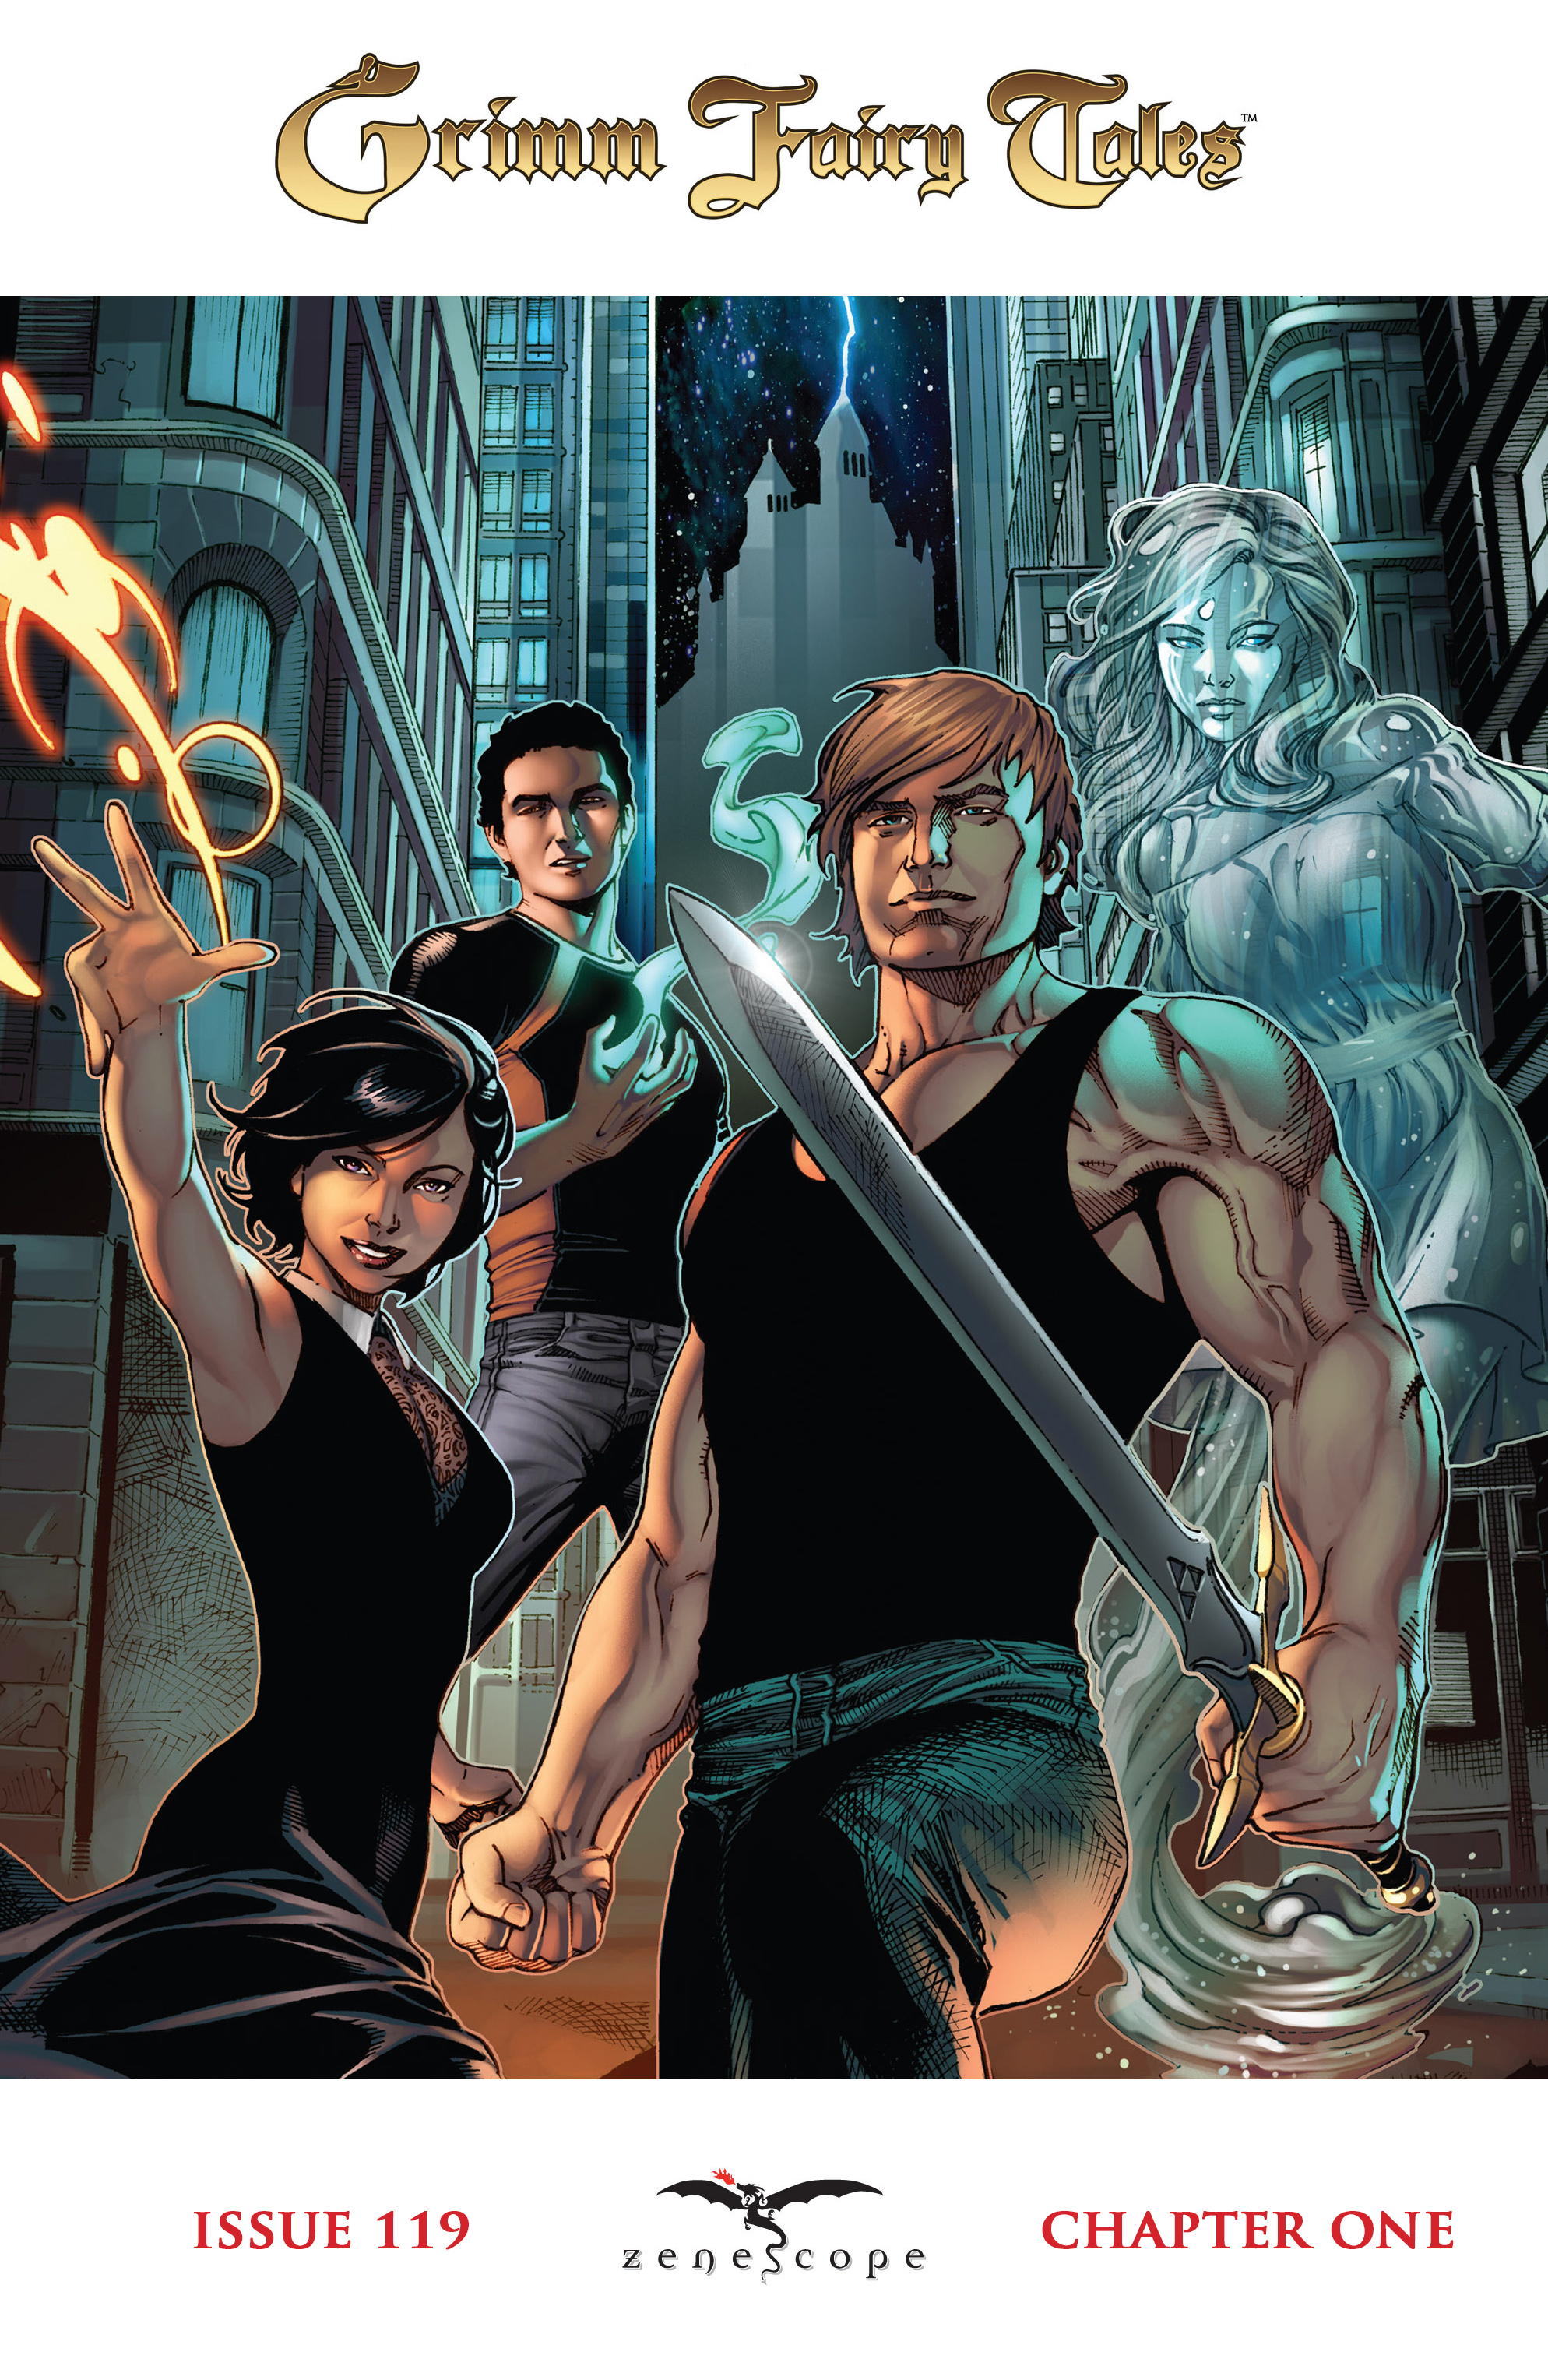 Read online Grimm Fairy Tales: Arcane Acre comic -  Issue # TPB 4 - 6